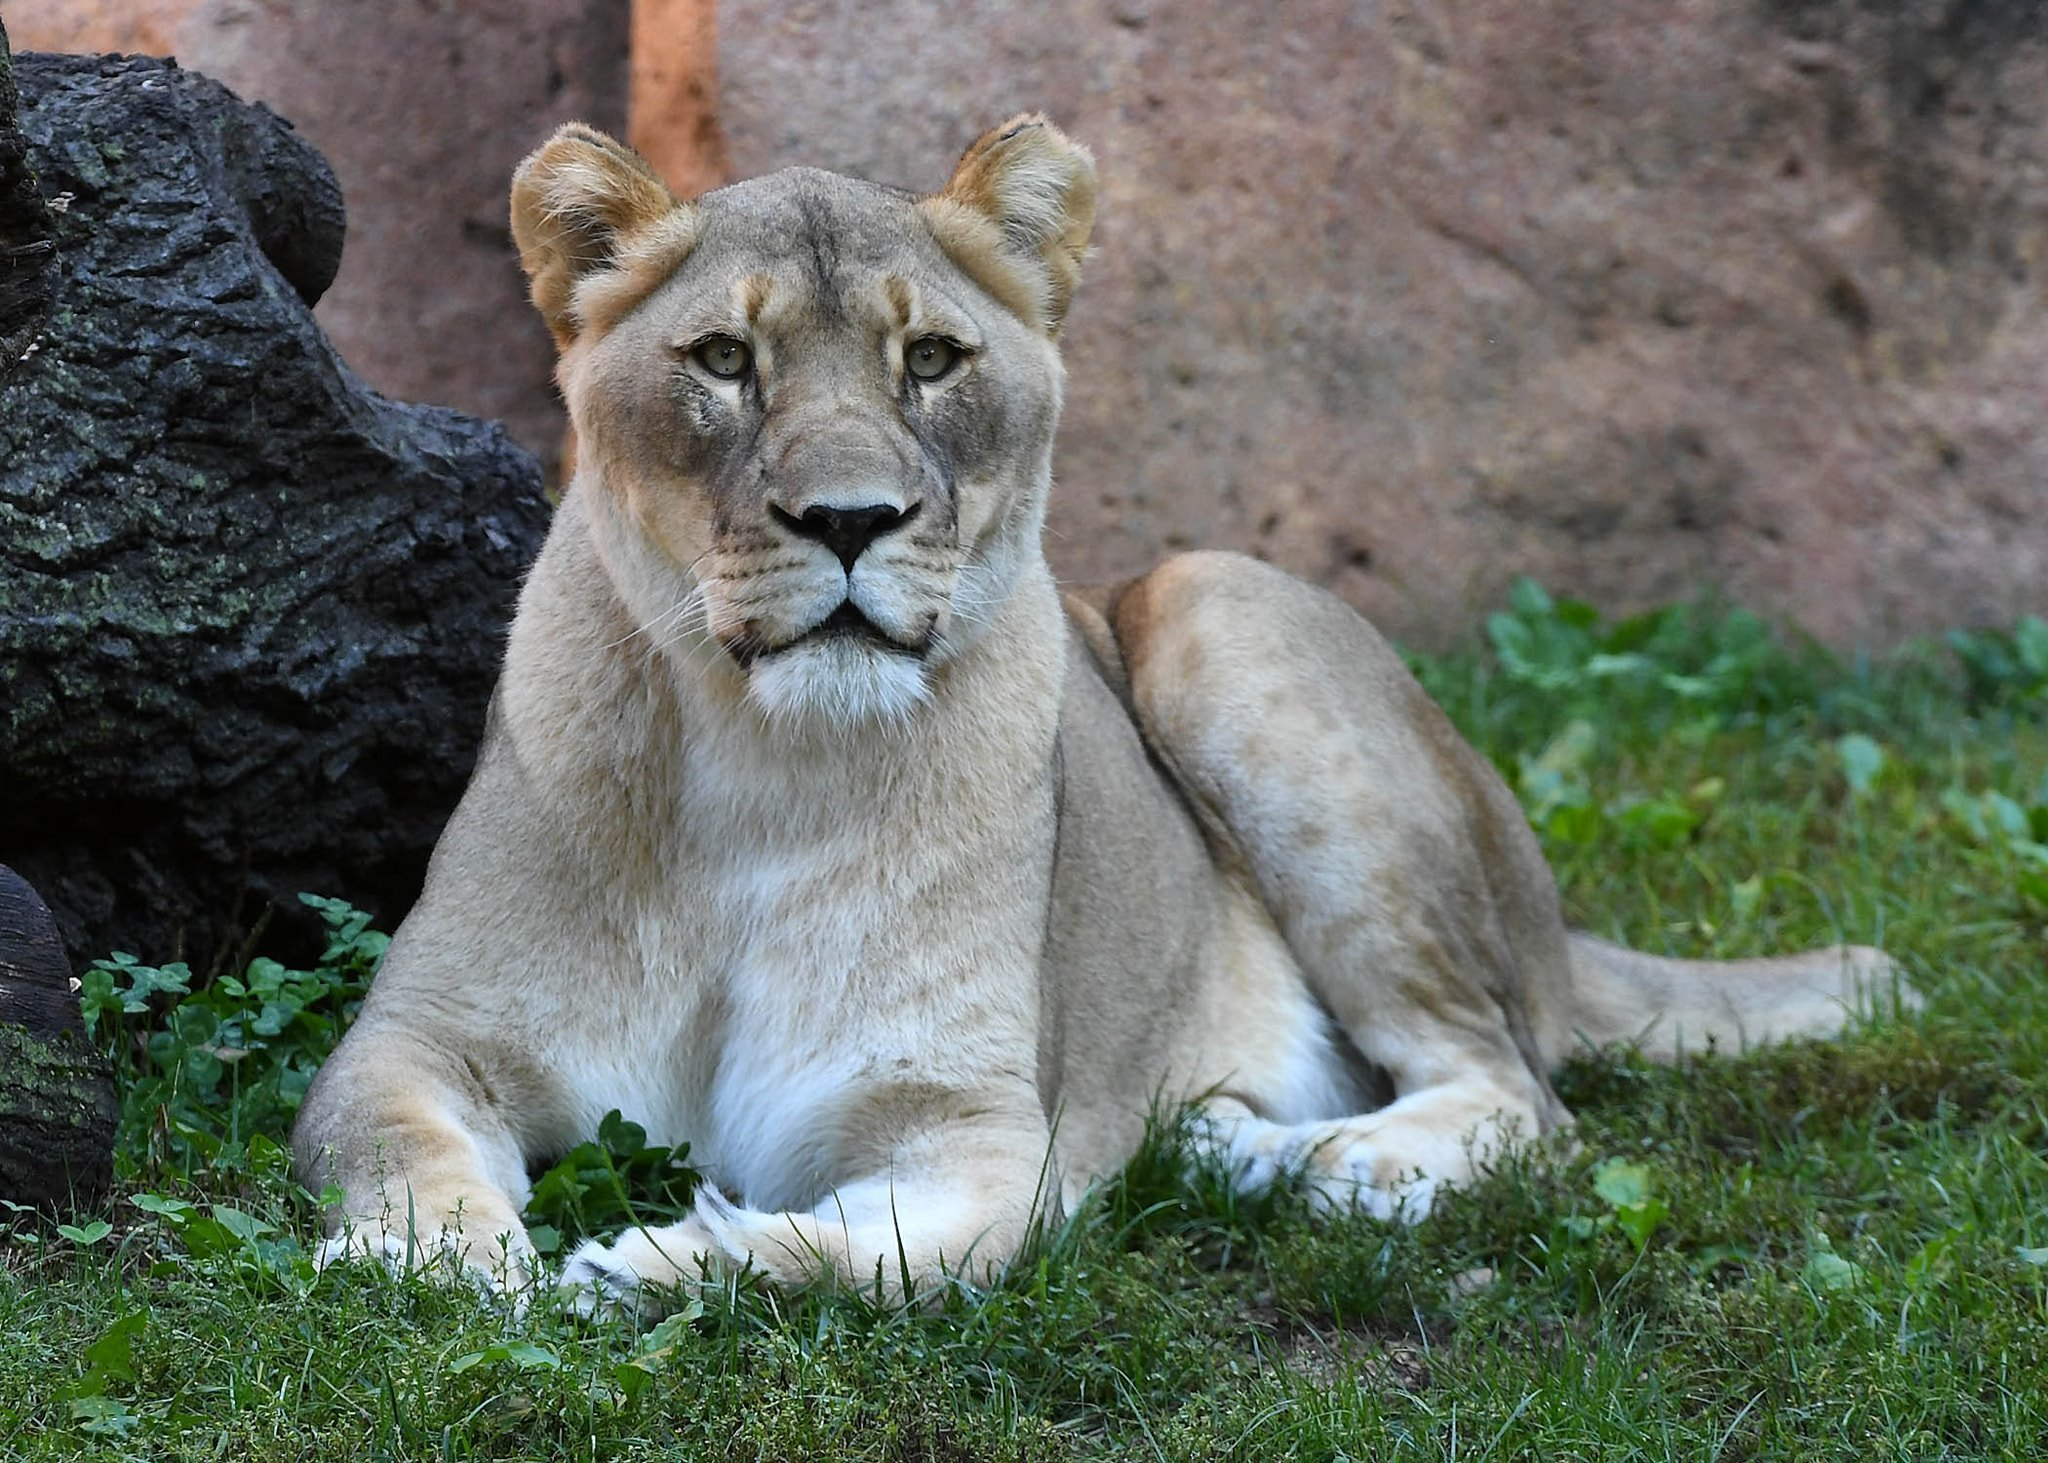 Lioness dies at Illinois zoo after suffering fall less than two weeks after mate's death